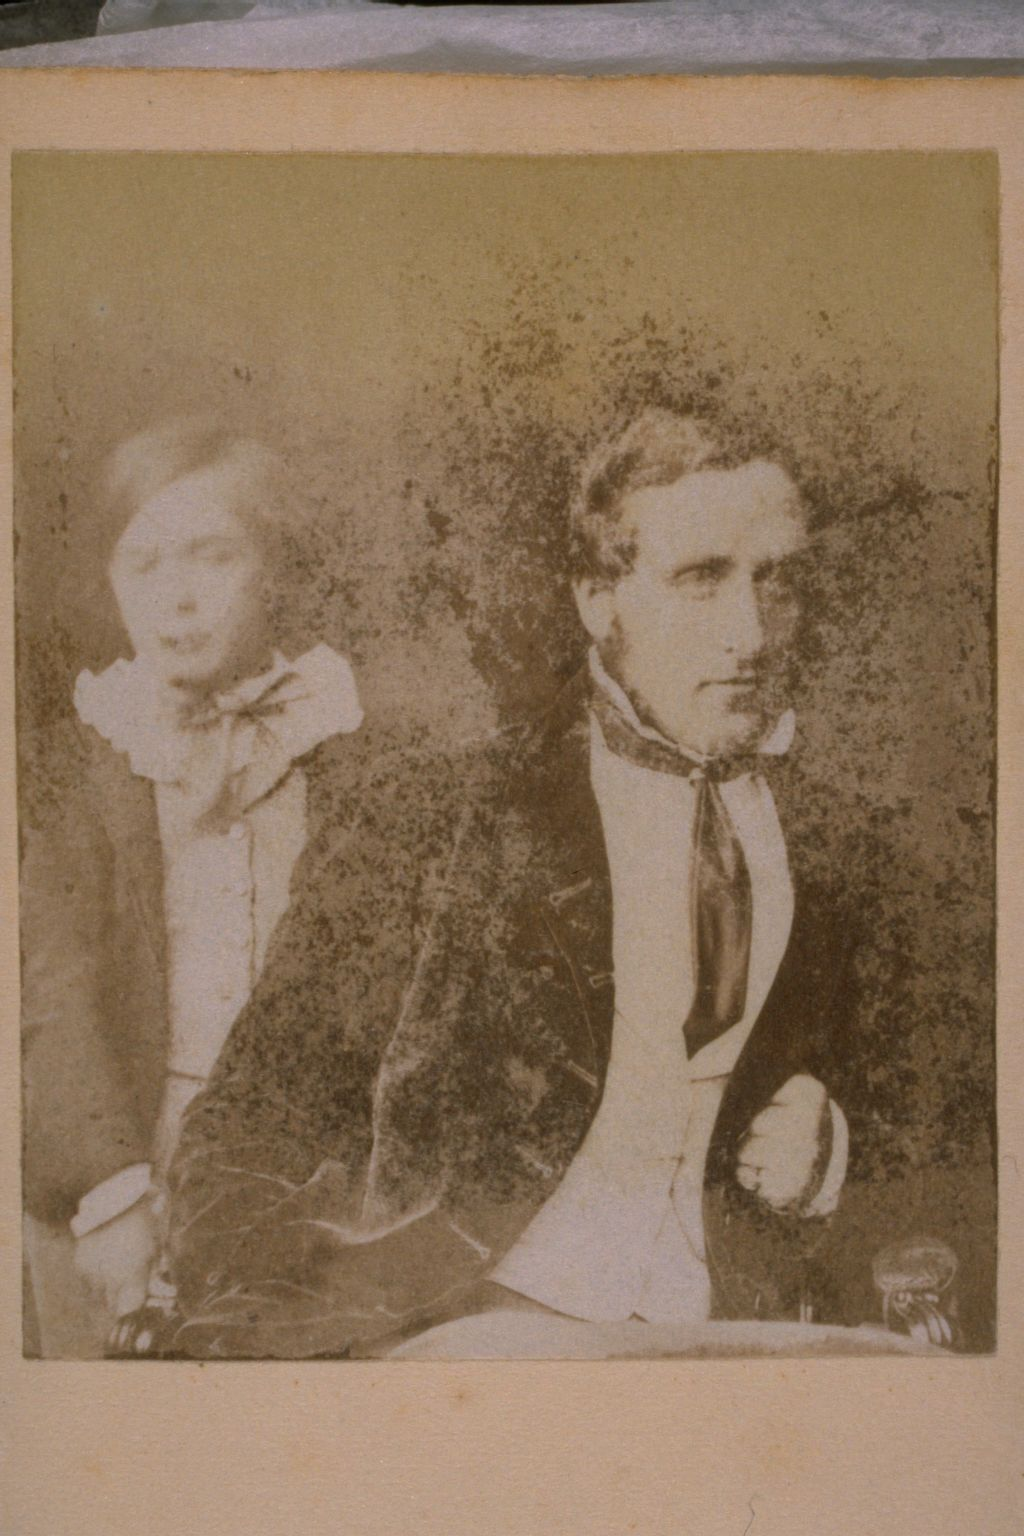 Unidentified man and boy.